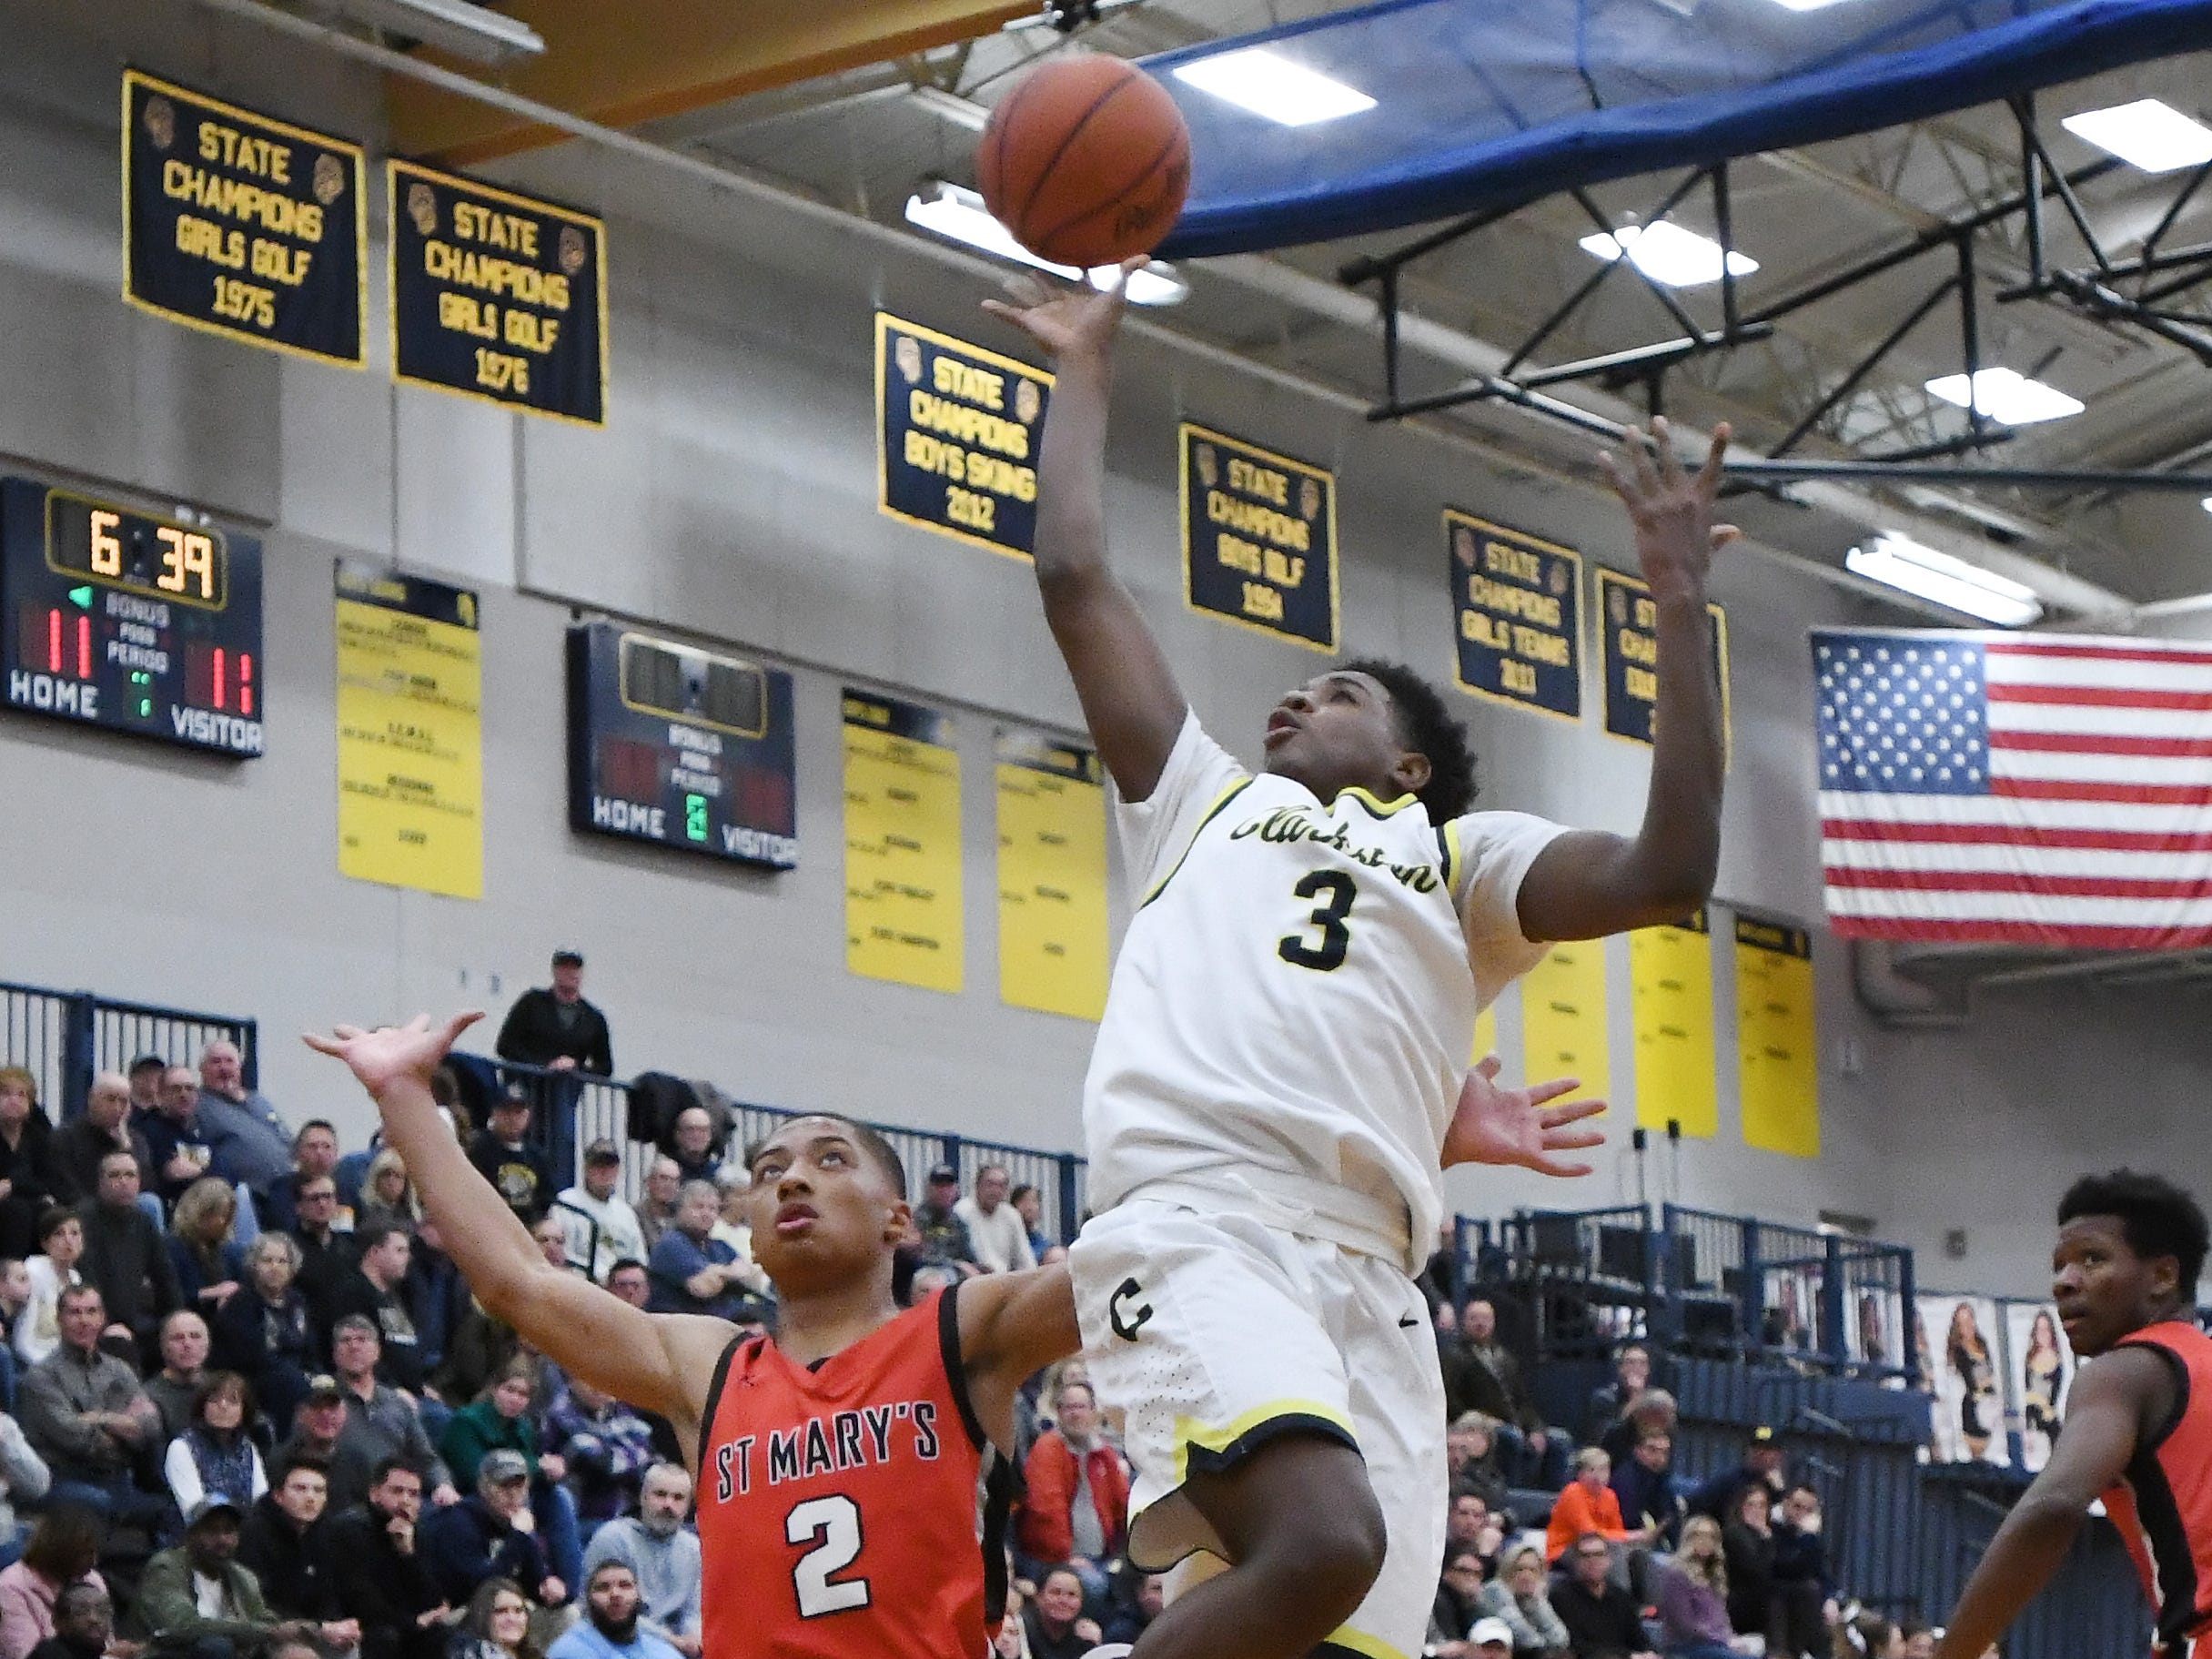 Clarkston's Desmond Millie-Bradley lays a shot up past St. Mary's Kahlil Rozier in the second quarter of their game at Clarkston High School, Friday night, December 7, 2018.